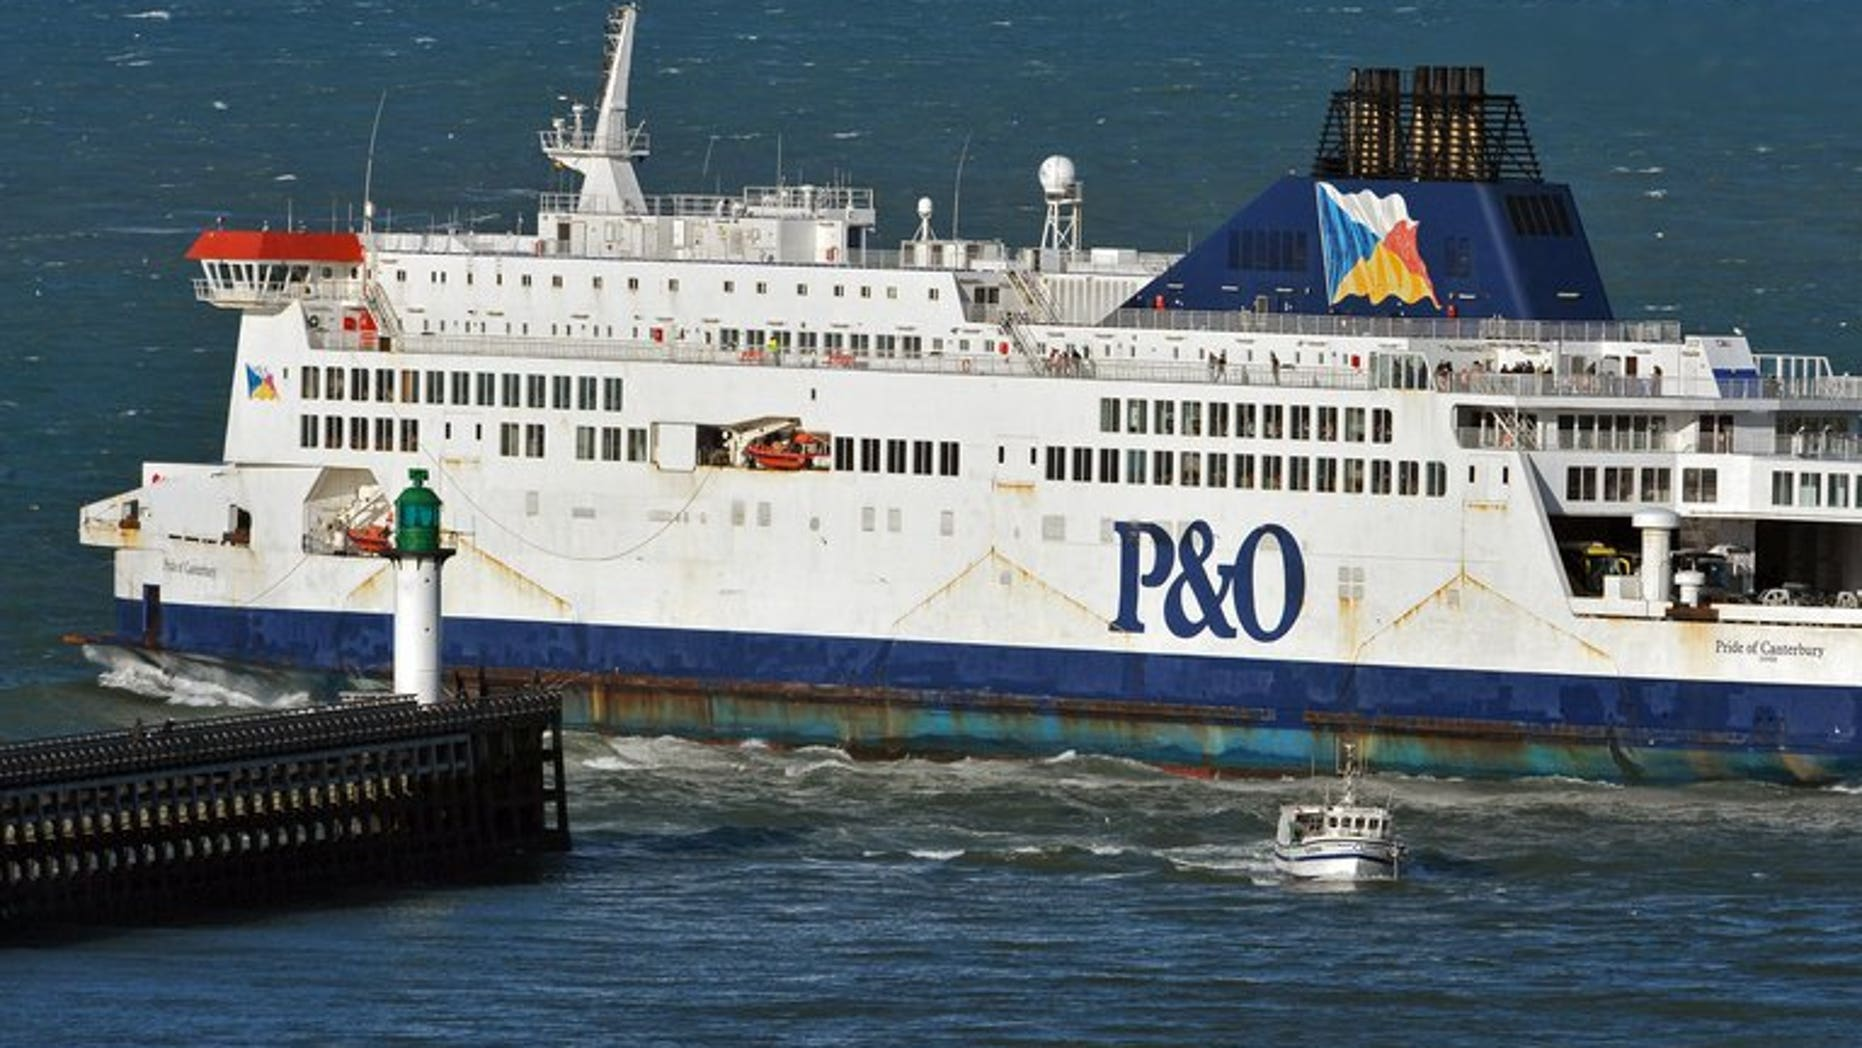 P&O ferry Pride of Canterbury leaves Calais harbour, northern France, for Dover on January 2, 2012. Police have arrested two people after 15 asylum seekers were found hidden in a tanker on board a ferry at the port of Dover.